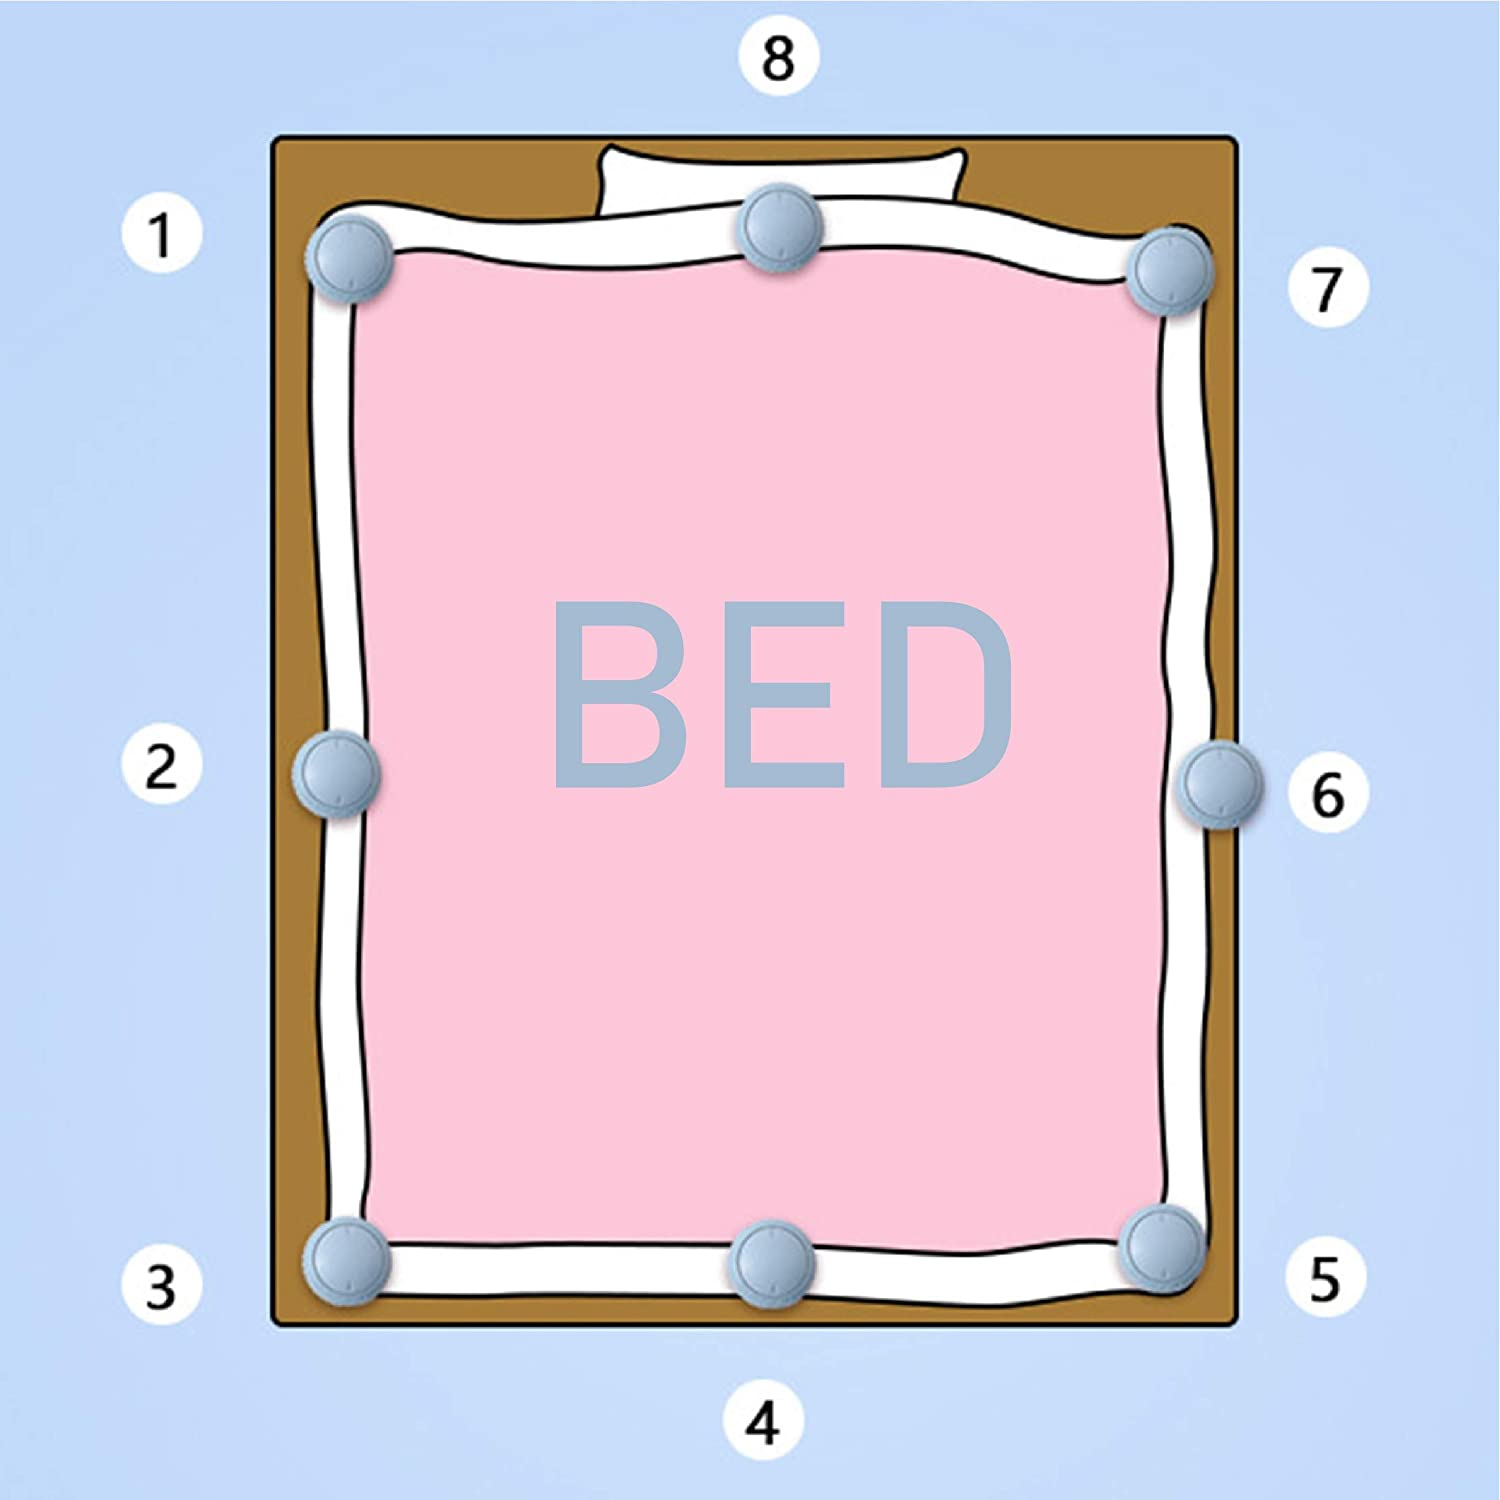 None/Brand Duvet Clips 8 Pcs with 16 Duvet Pins Prevent Comforter from Shifting in Cover Quilt Anti-Movement ABS Clips Bed Sheet Fasteners Keep Corner in Place Child Safety Bedding Accessories Pink